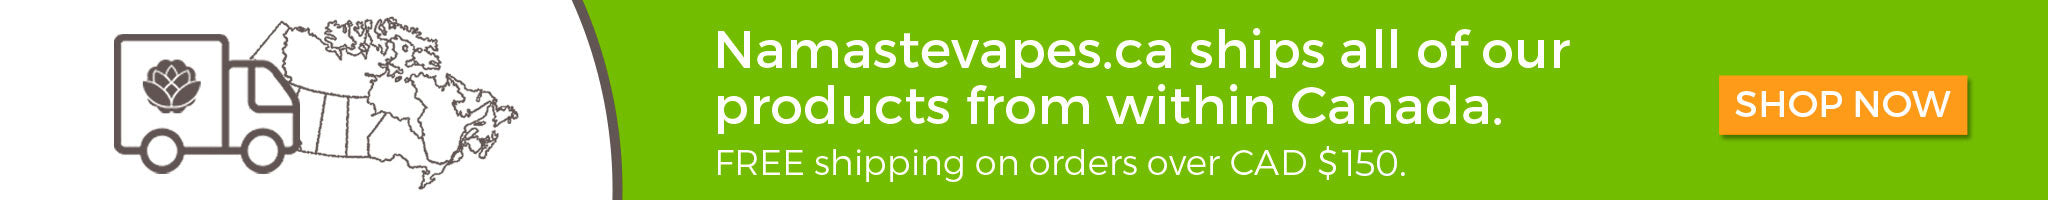 NamasteVapes Canada ships product from within Canada